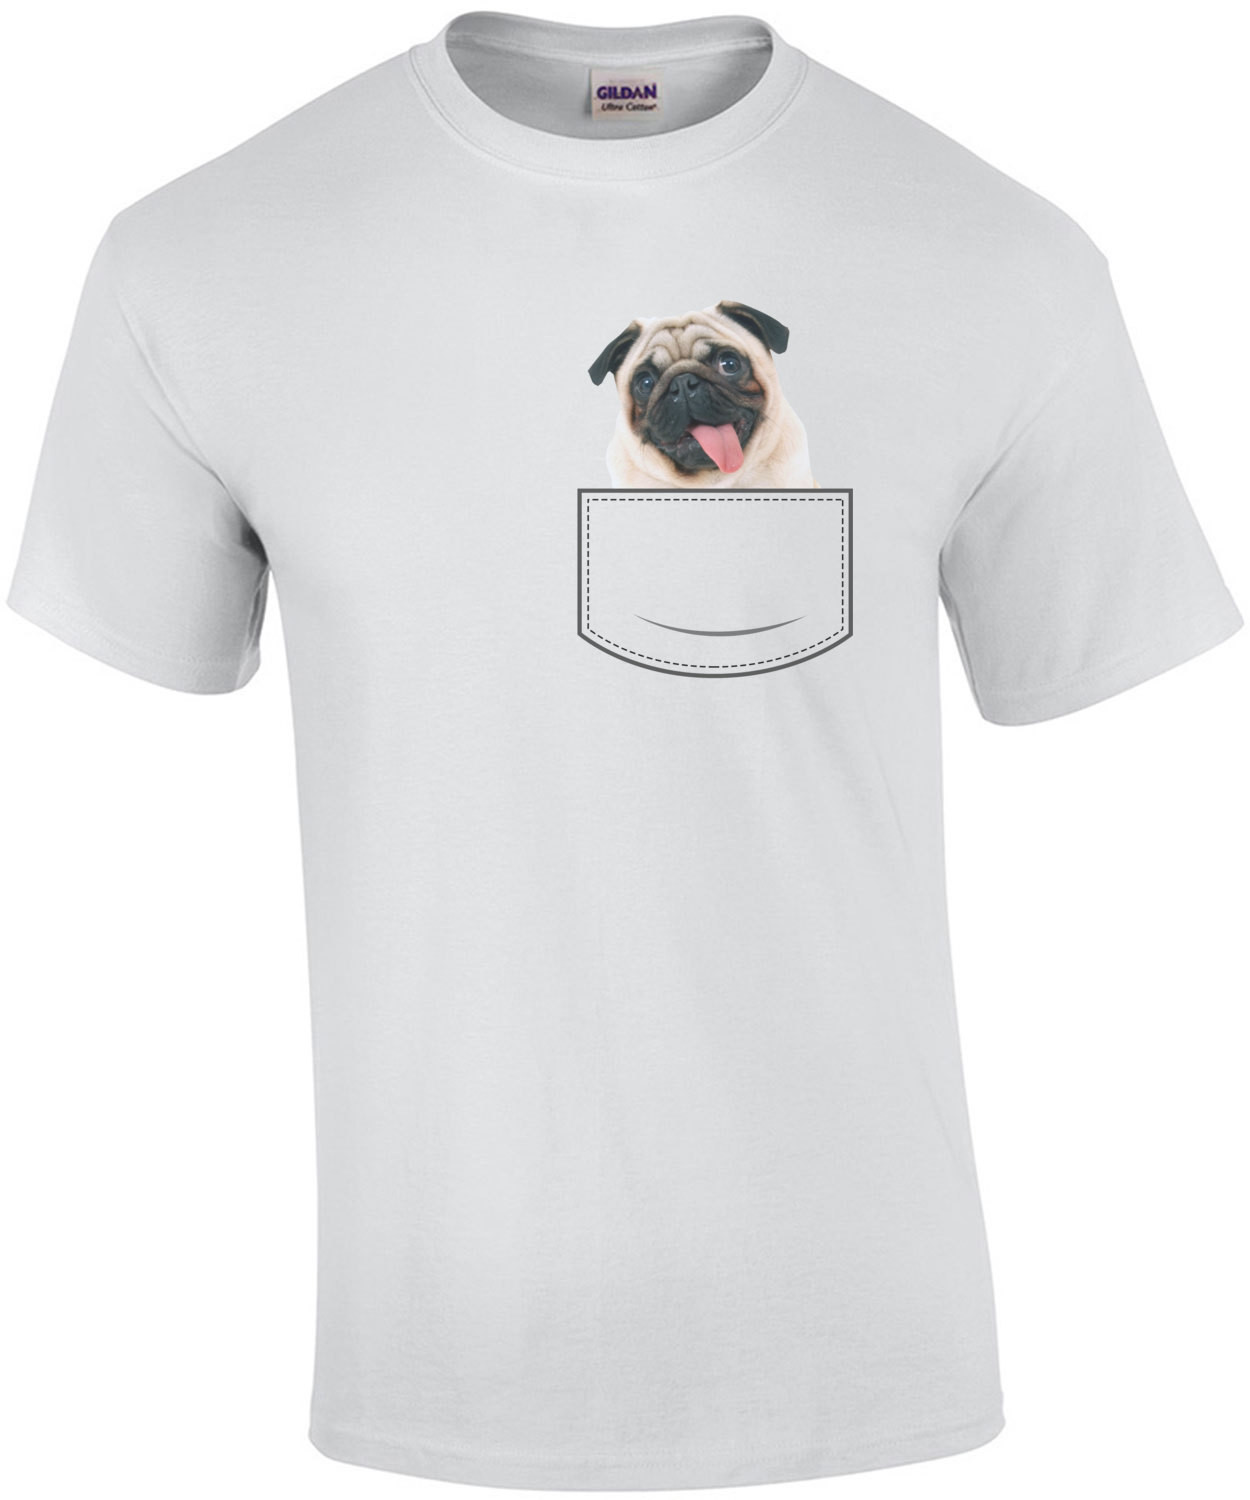 Pug in pocket - pocket pet t-shirt